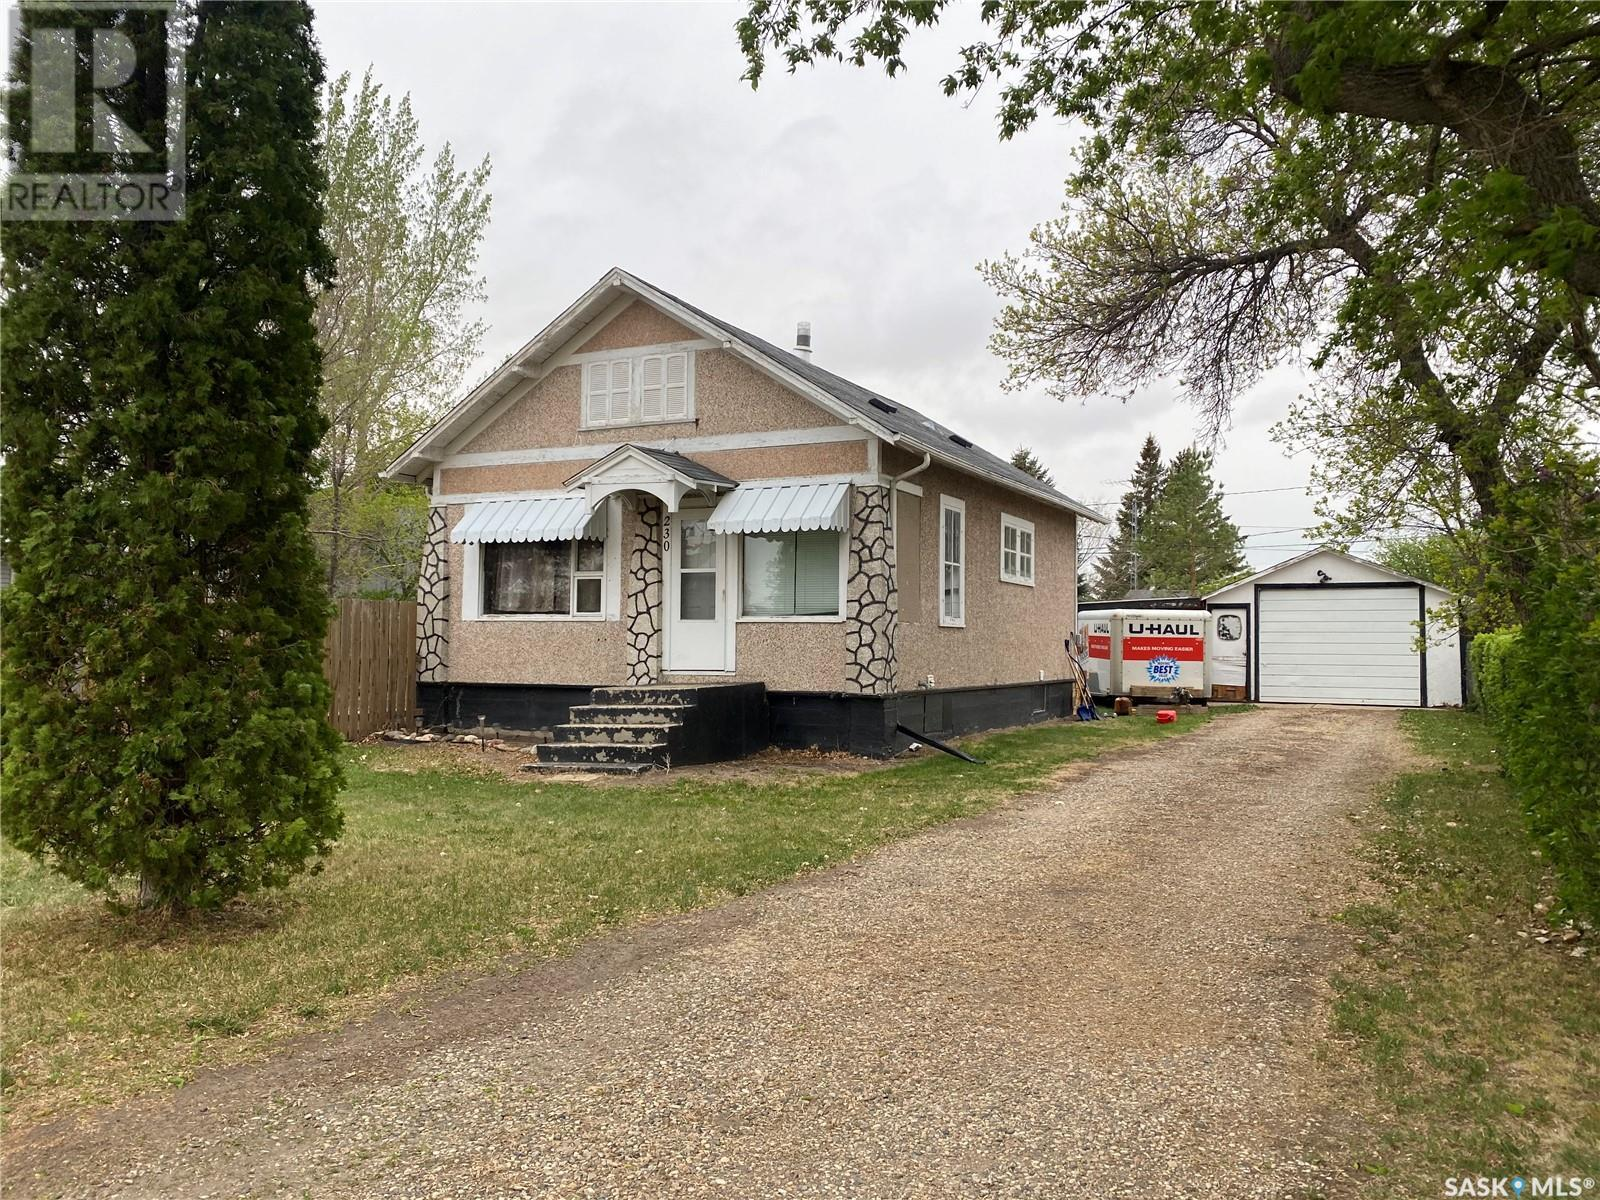 residential property for For sale at Carievale, Saskatchewan